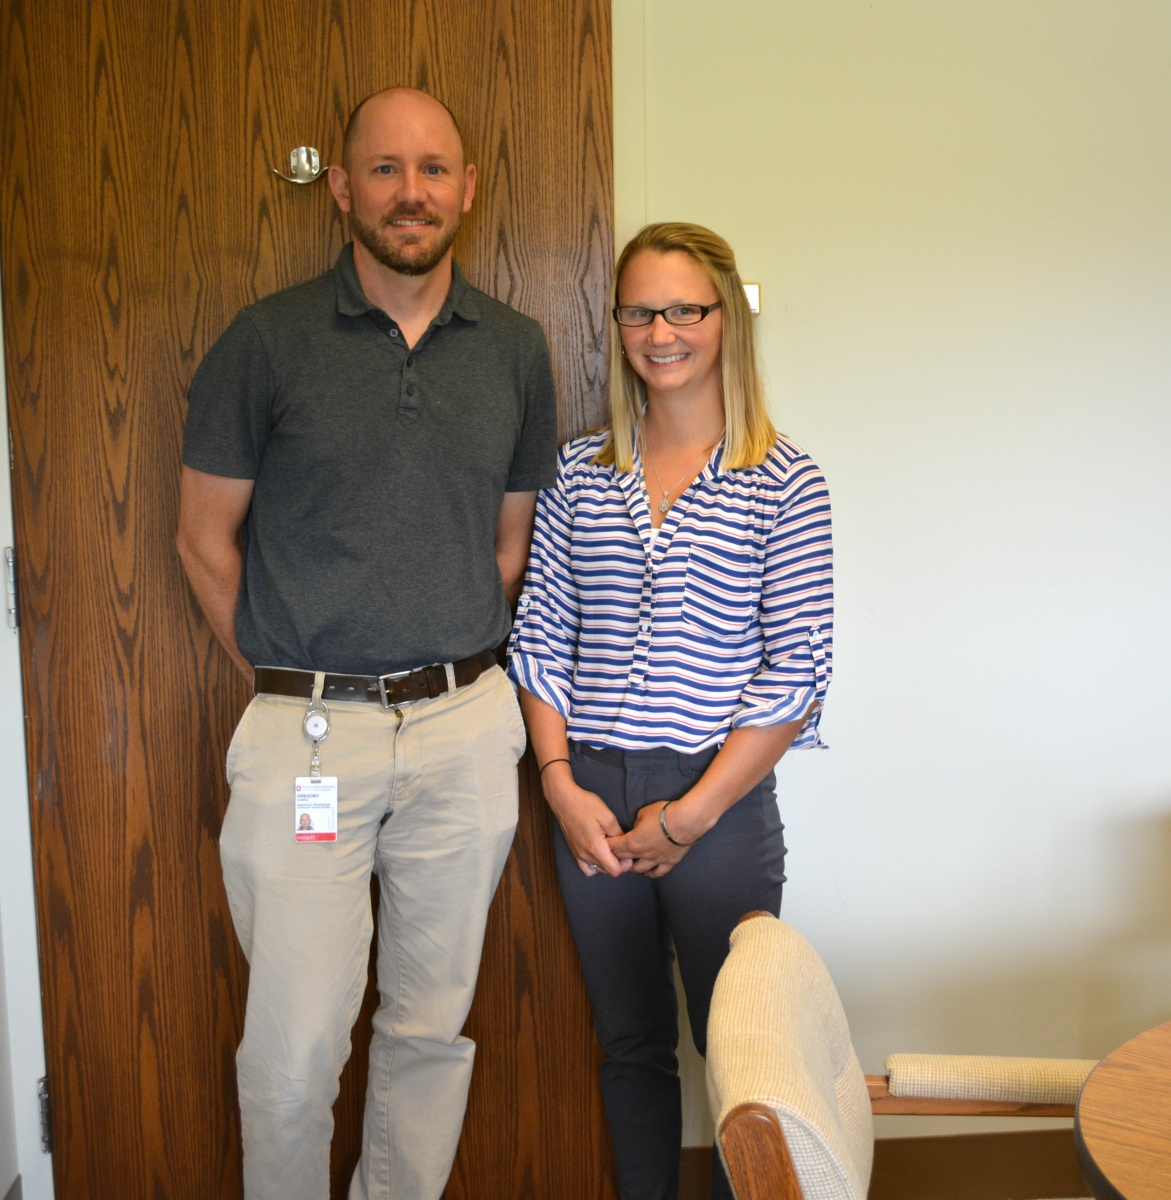 Dr Greg Habing, assistant professor in the Department of Veterinary Preventive Medicine, and second-year student Keirsten Harris.